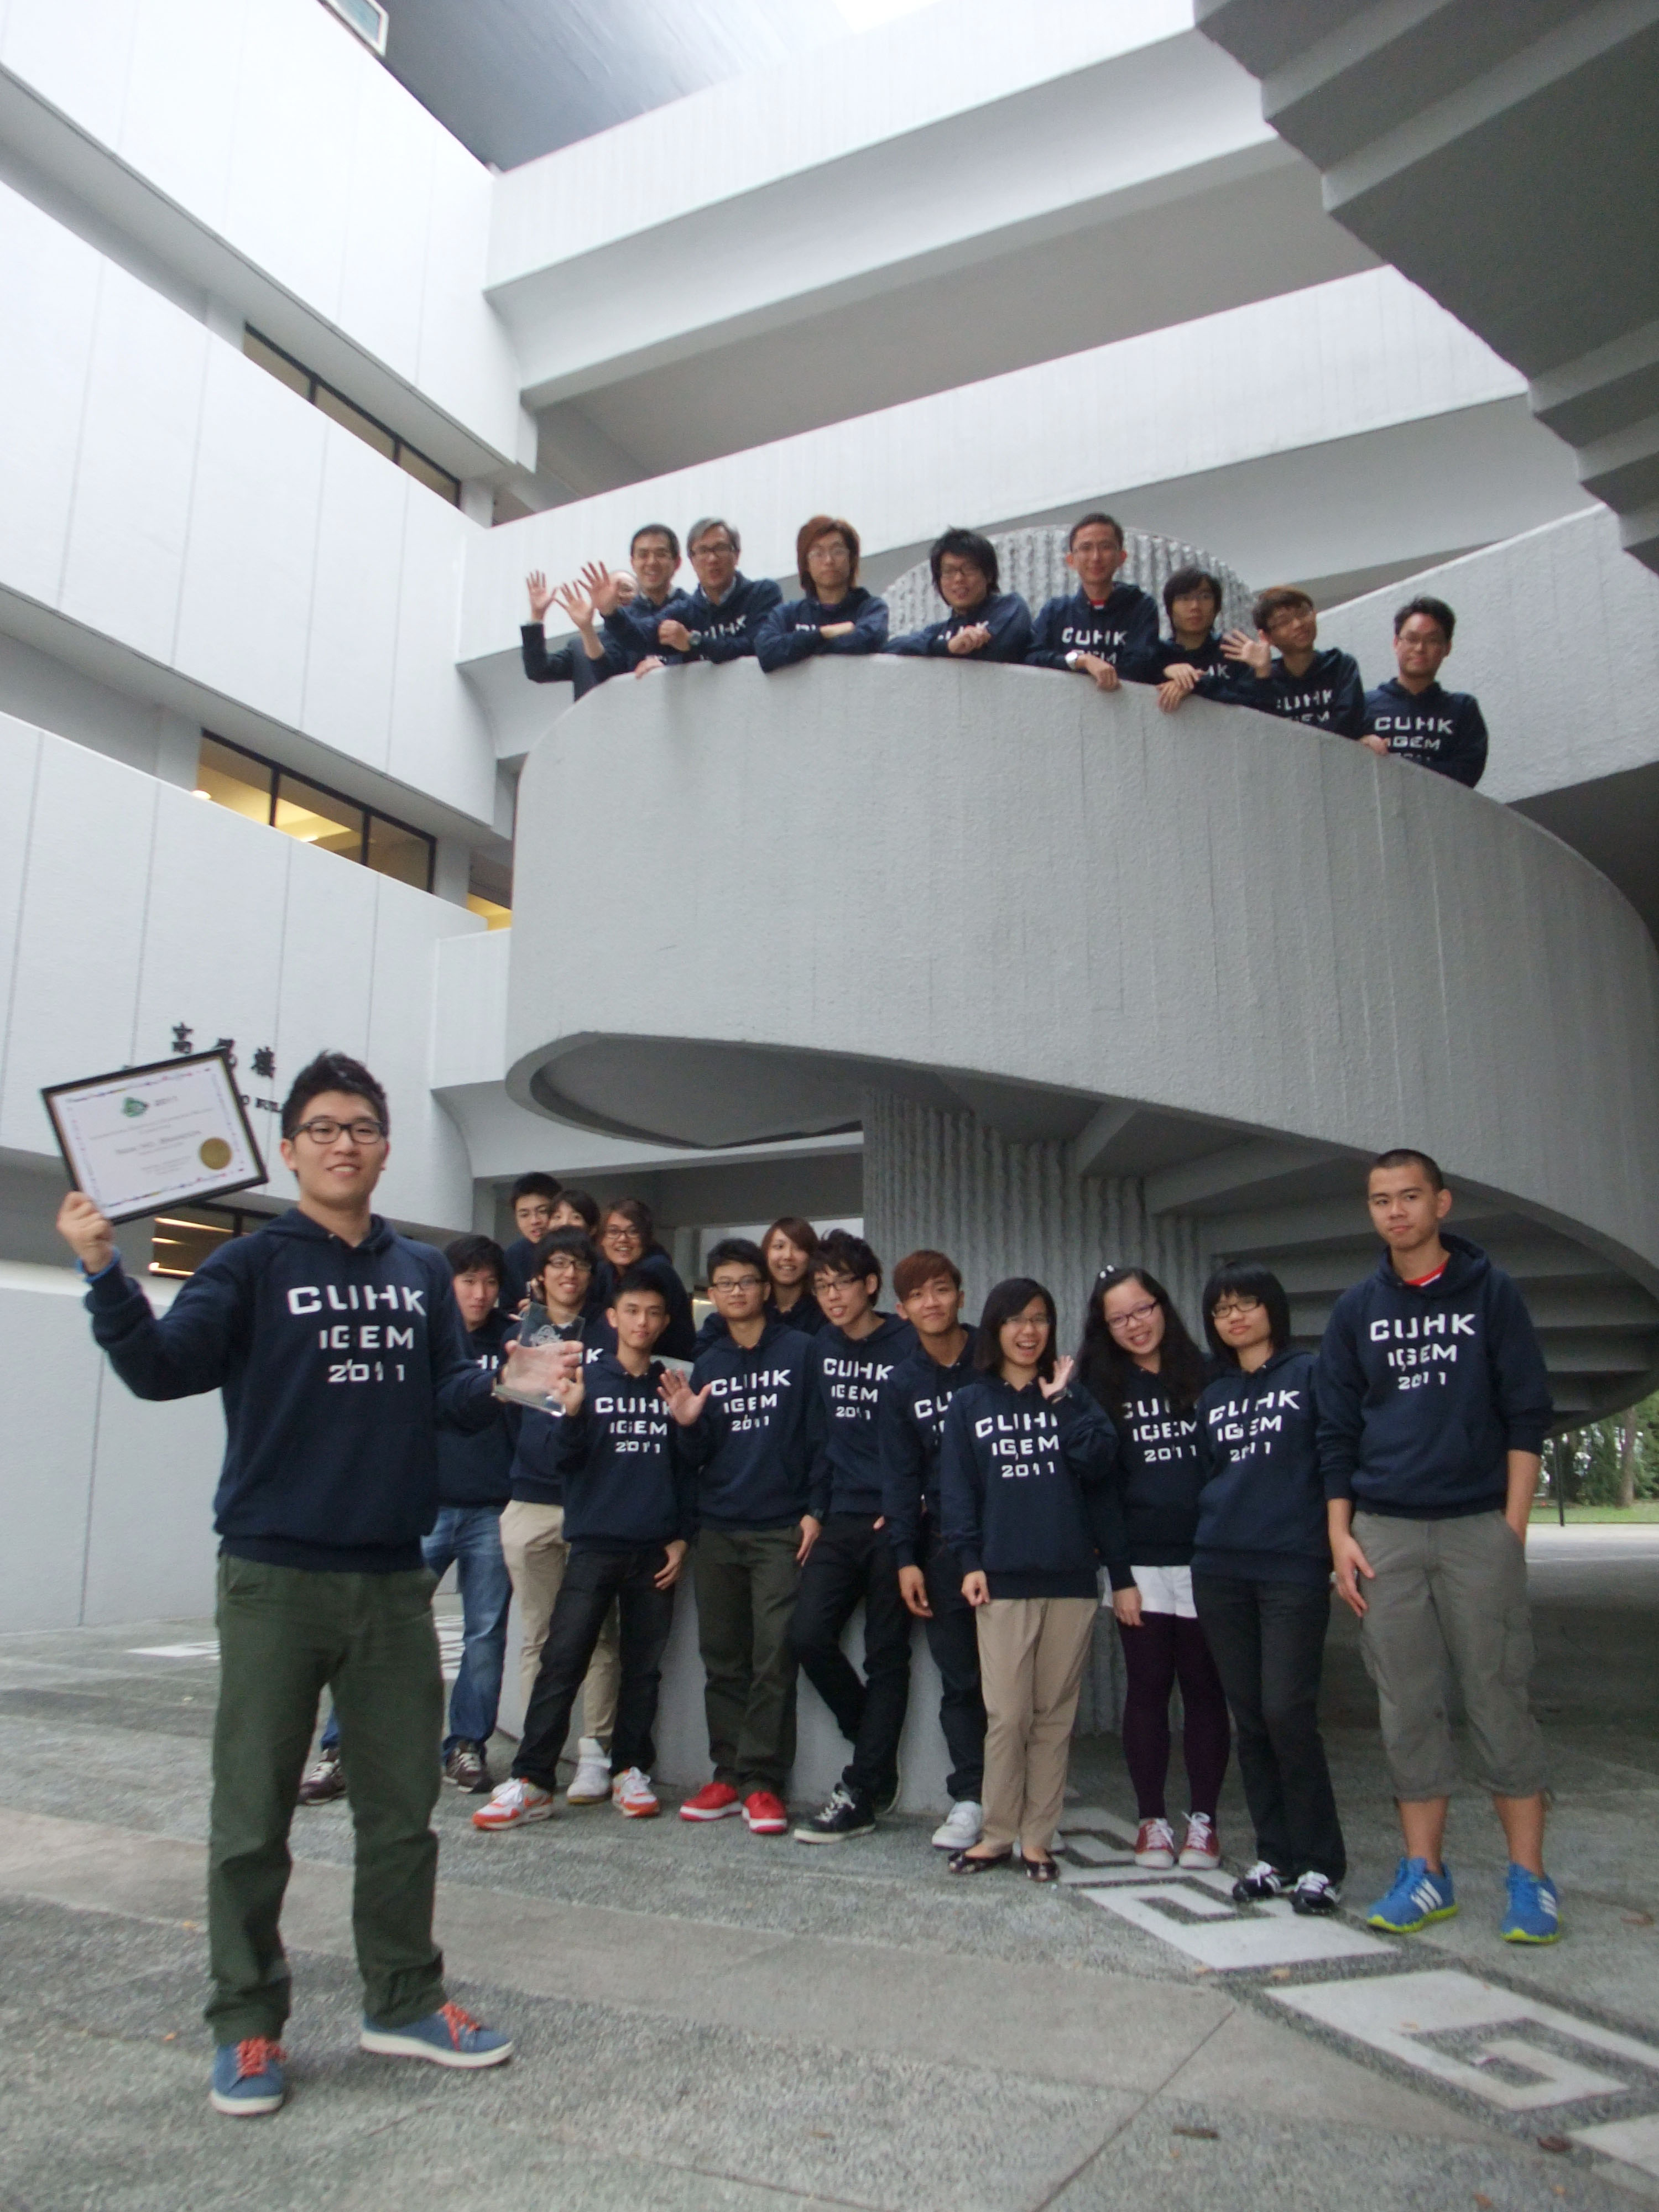 A group photo of the winning students and their coaches